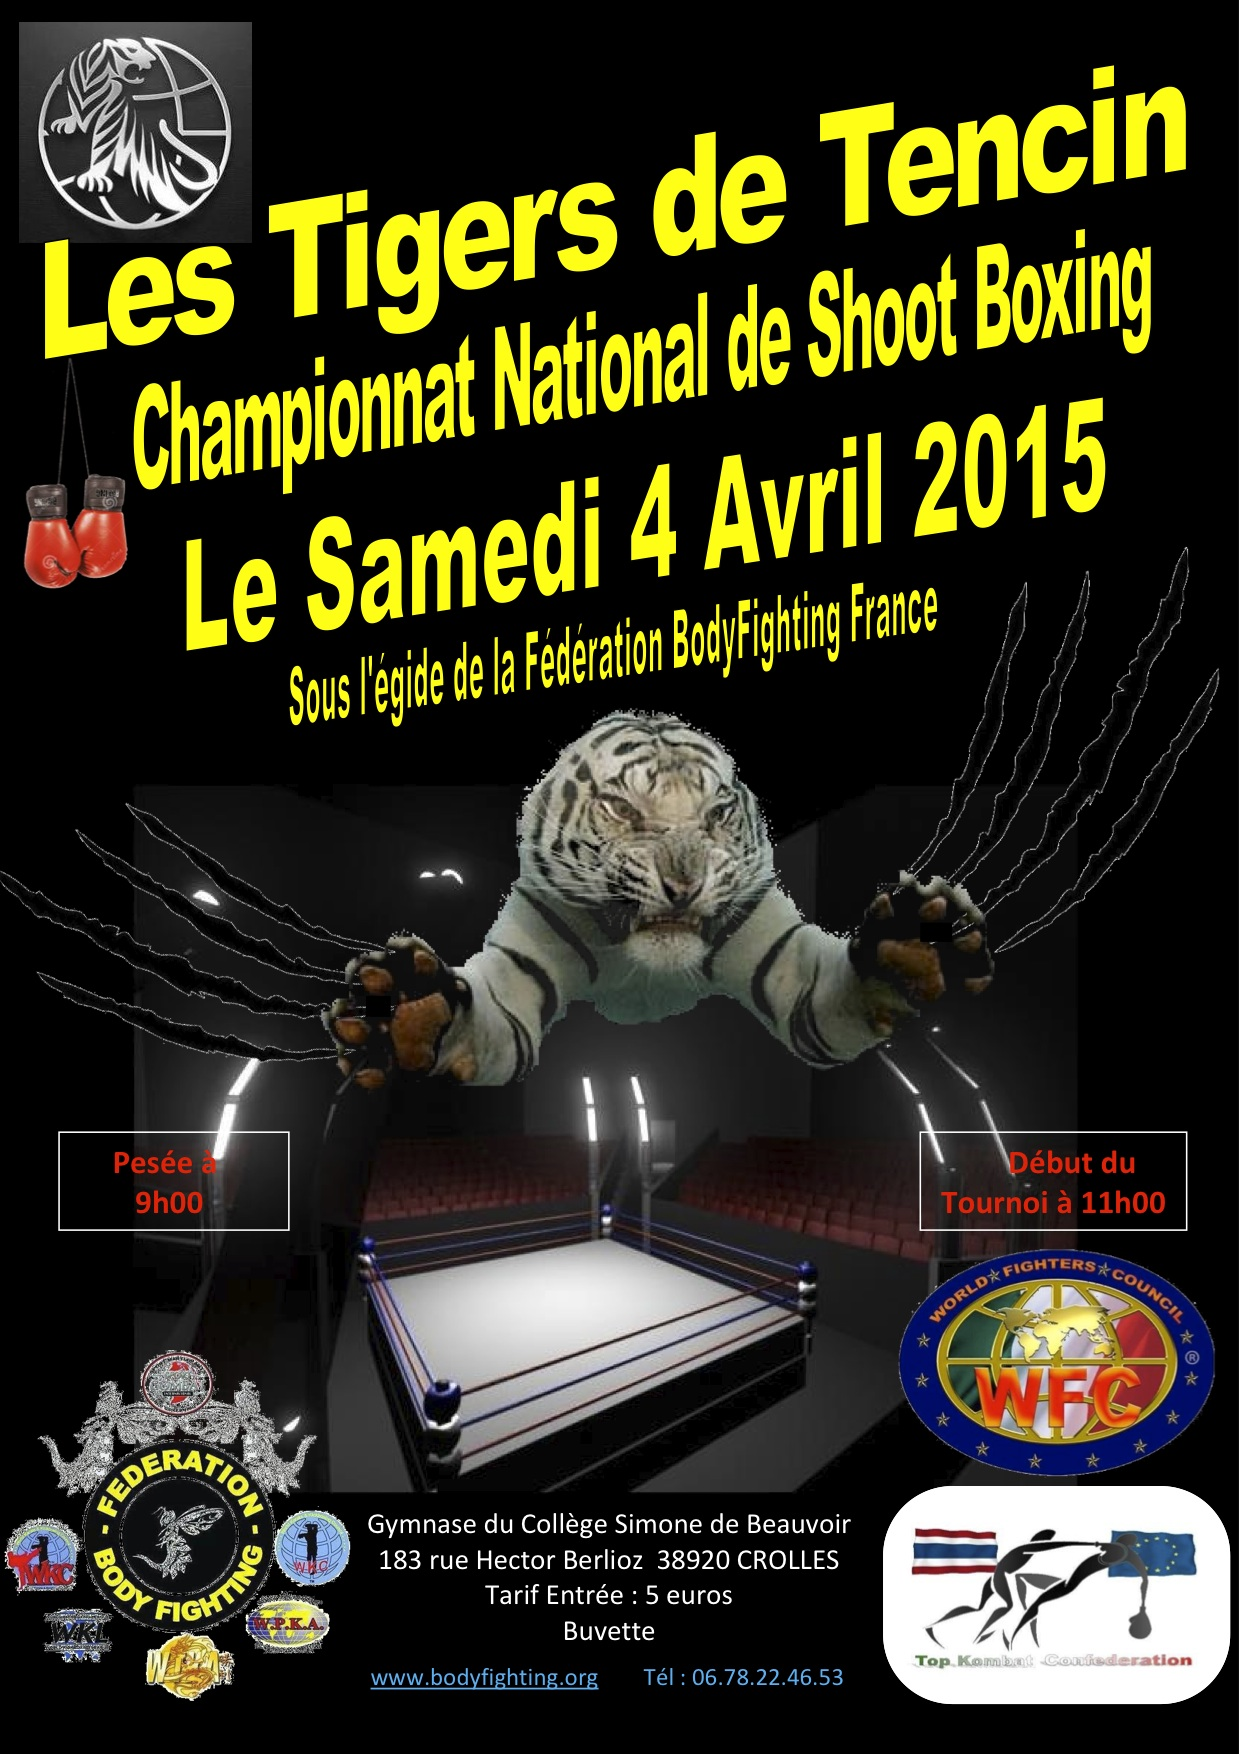 Championnat Nationale de Shootboxing 2015